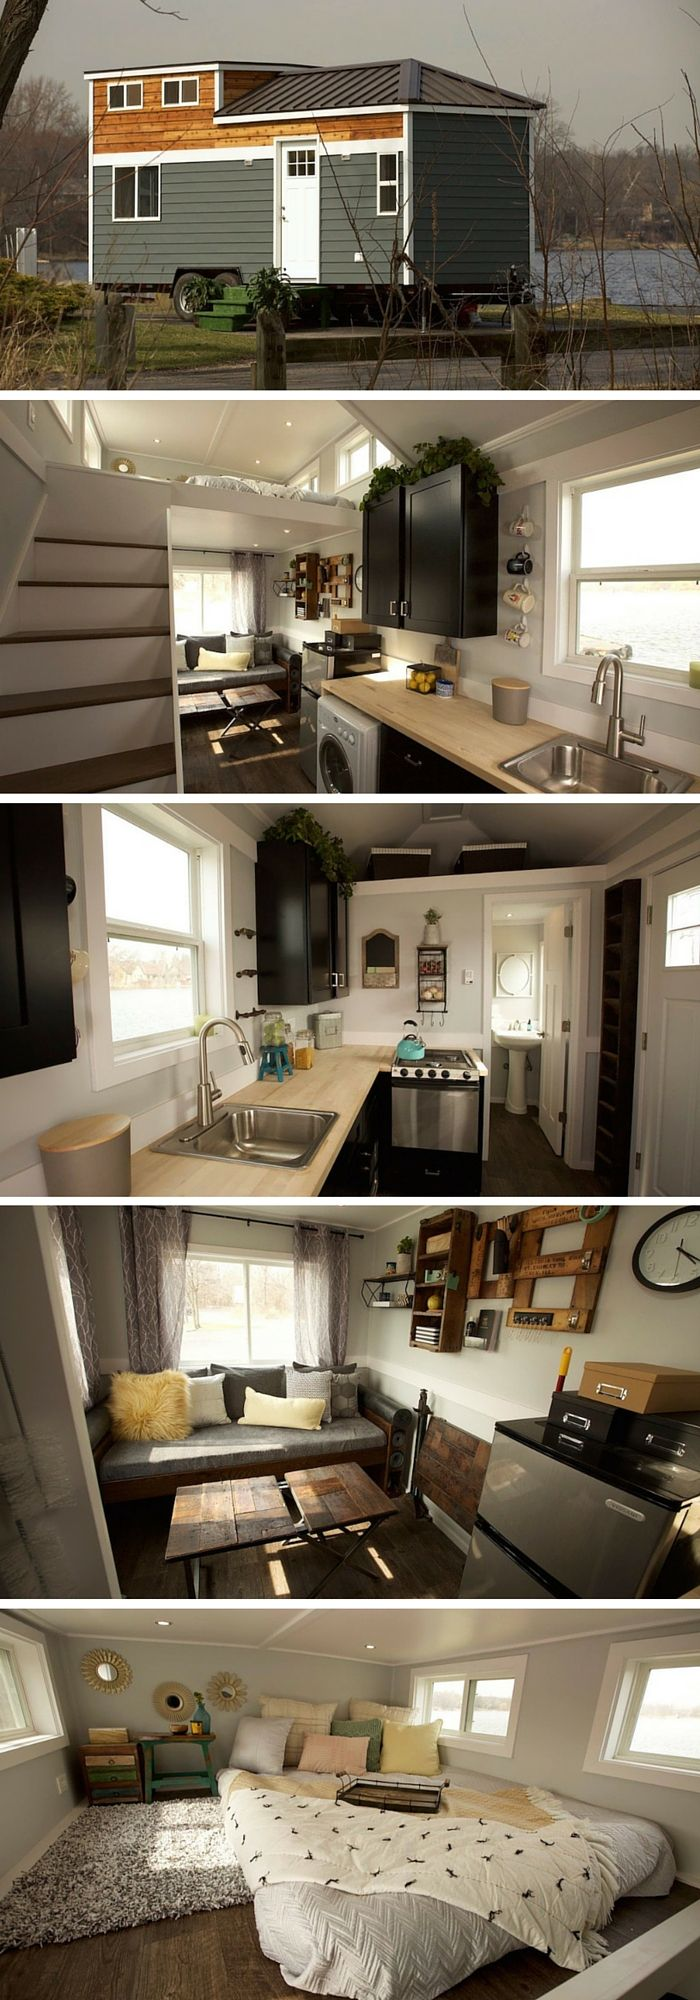 House design victoria bc - Super Easy To Build Tiny House Plans